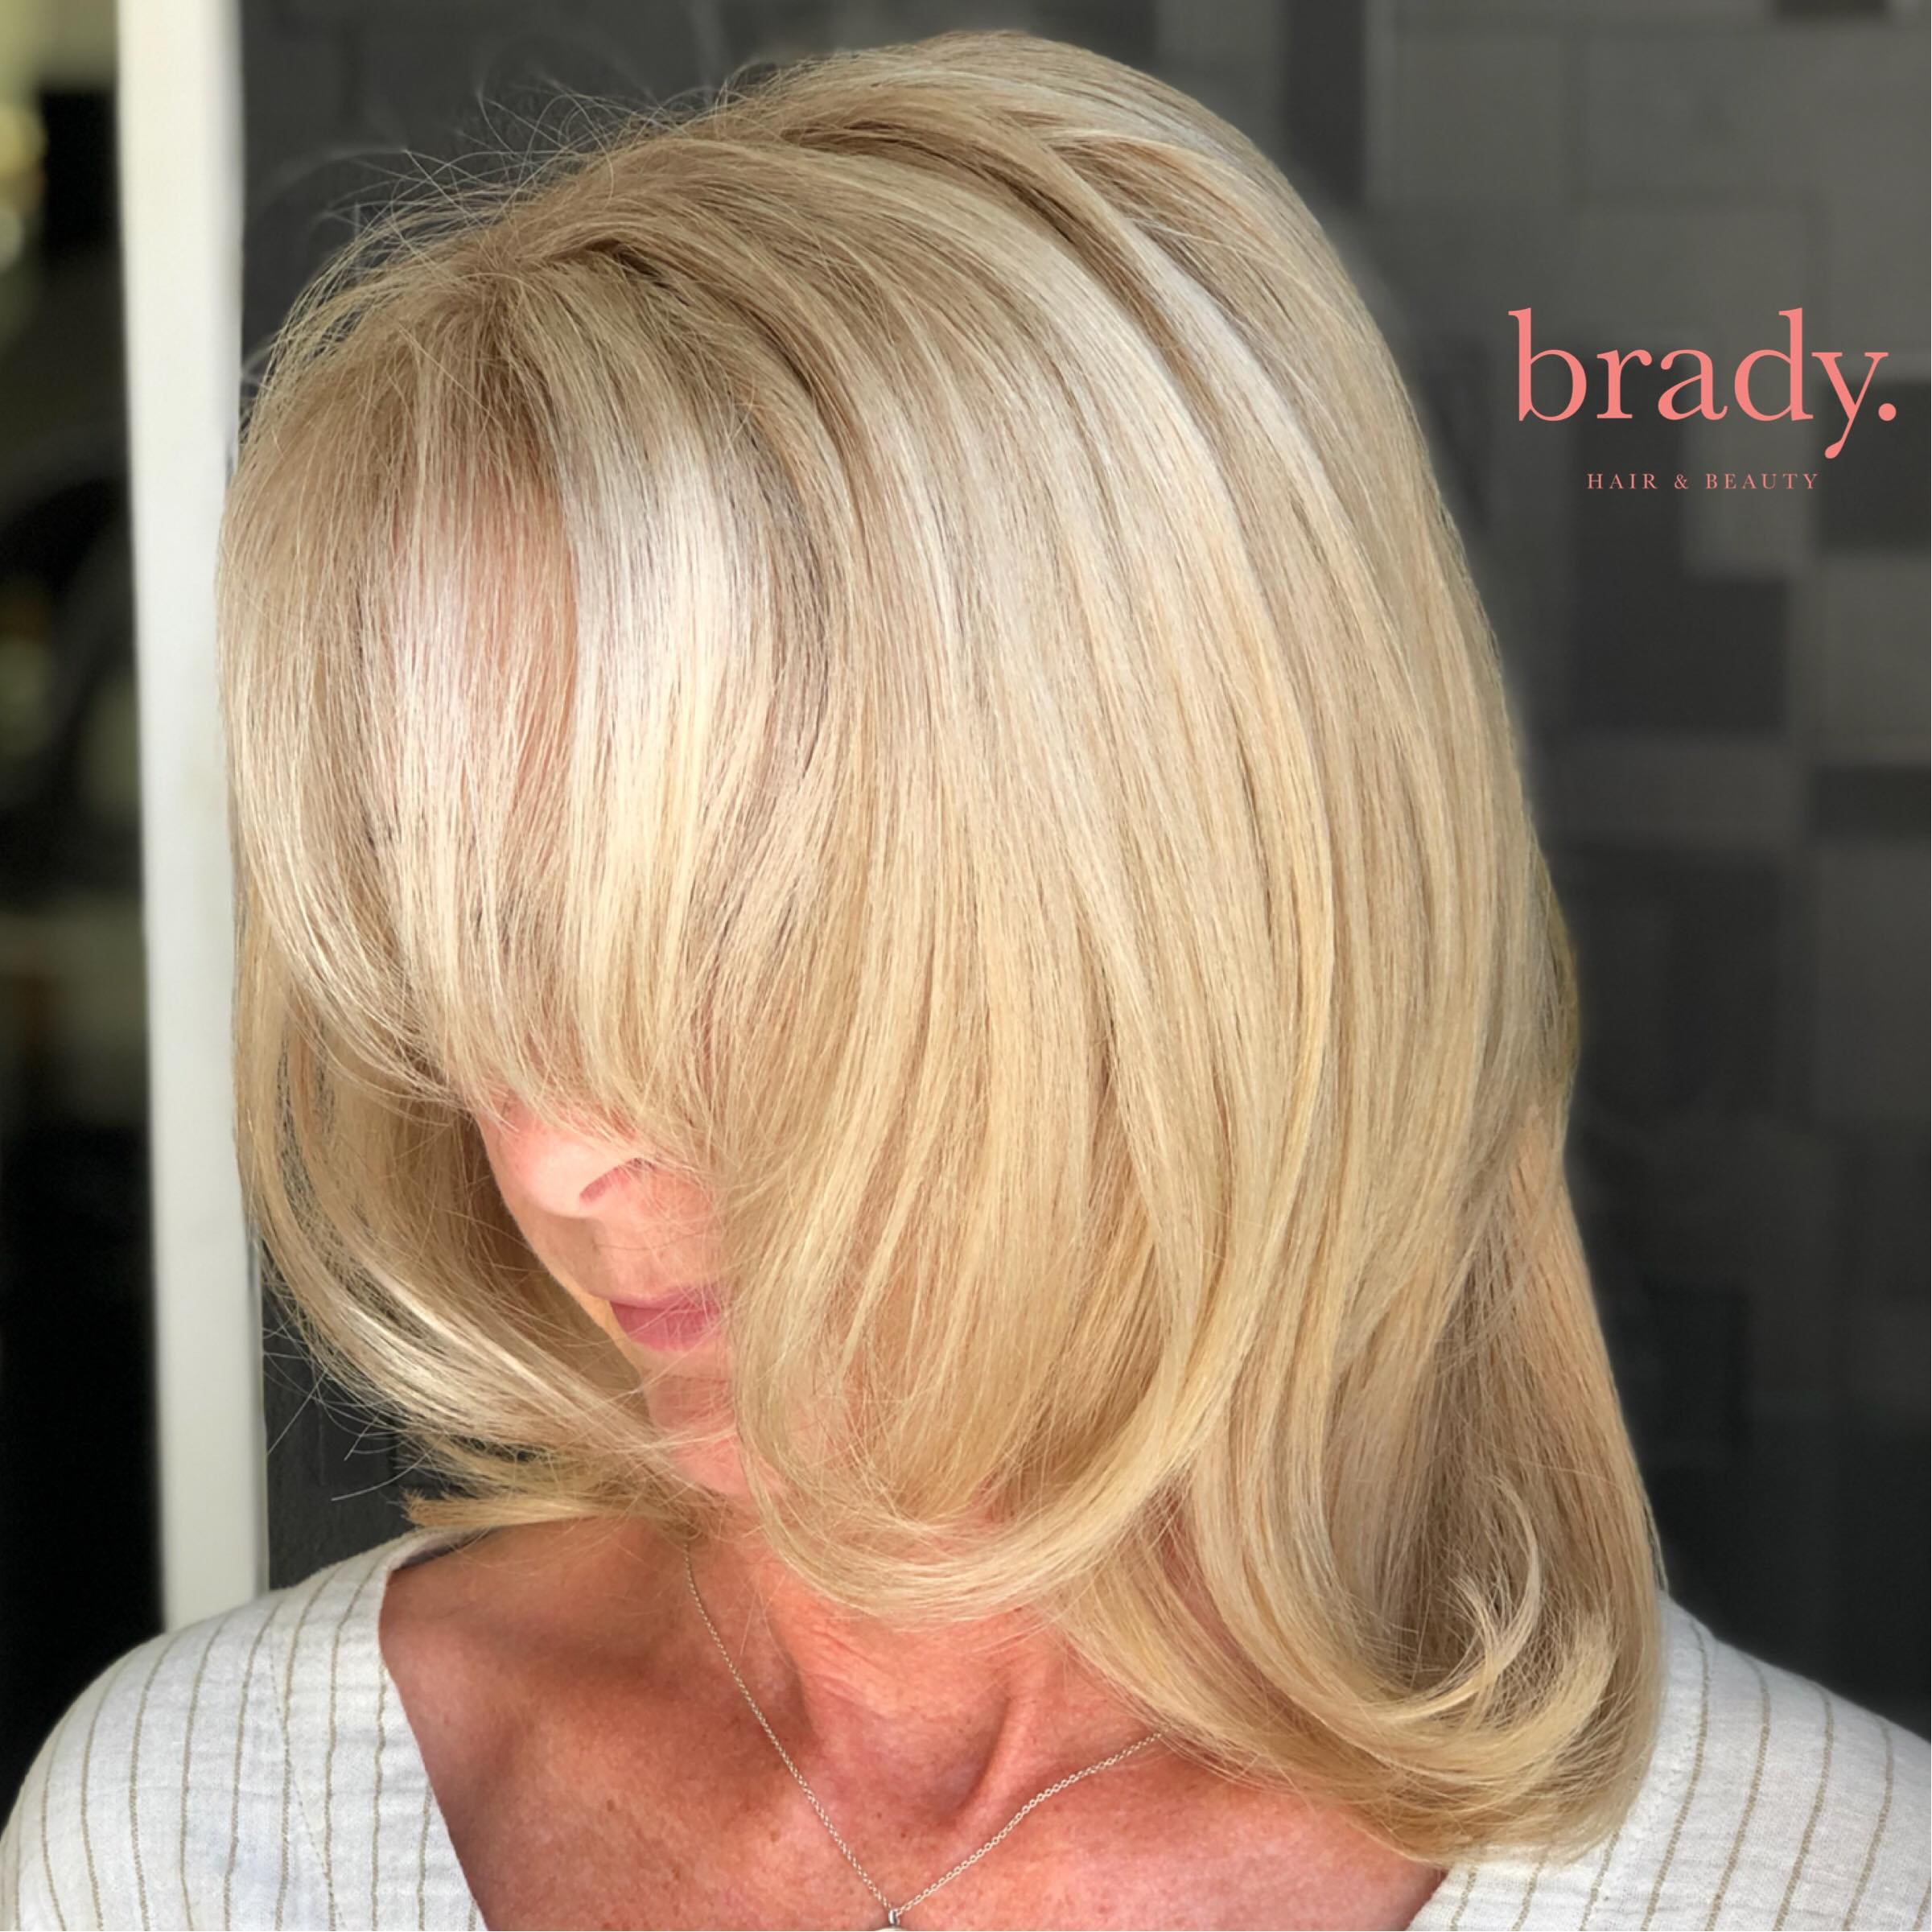 Photo of woman with soft, shoulder length blonde hair, styled by Brady. Hair & Beauty, Toowong, Brisbane.